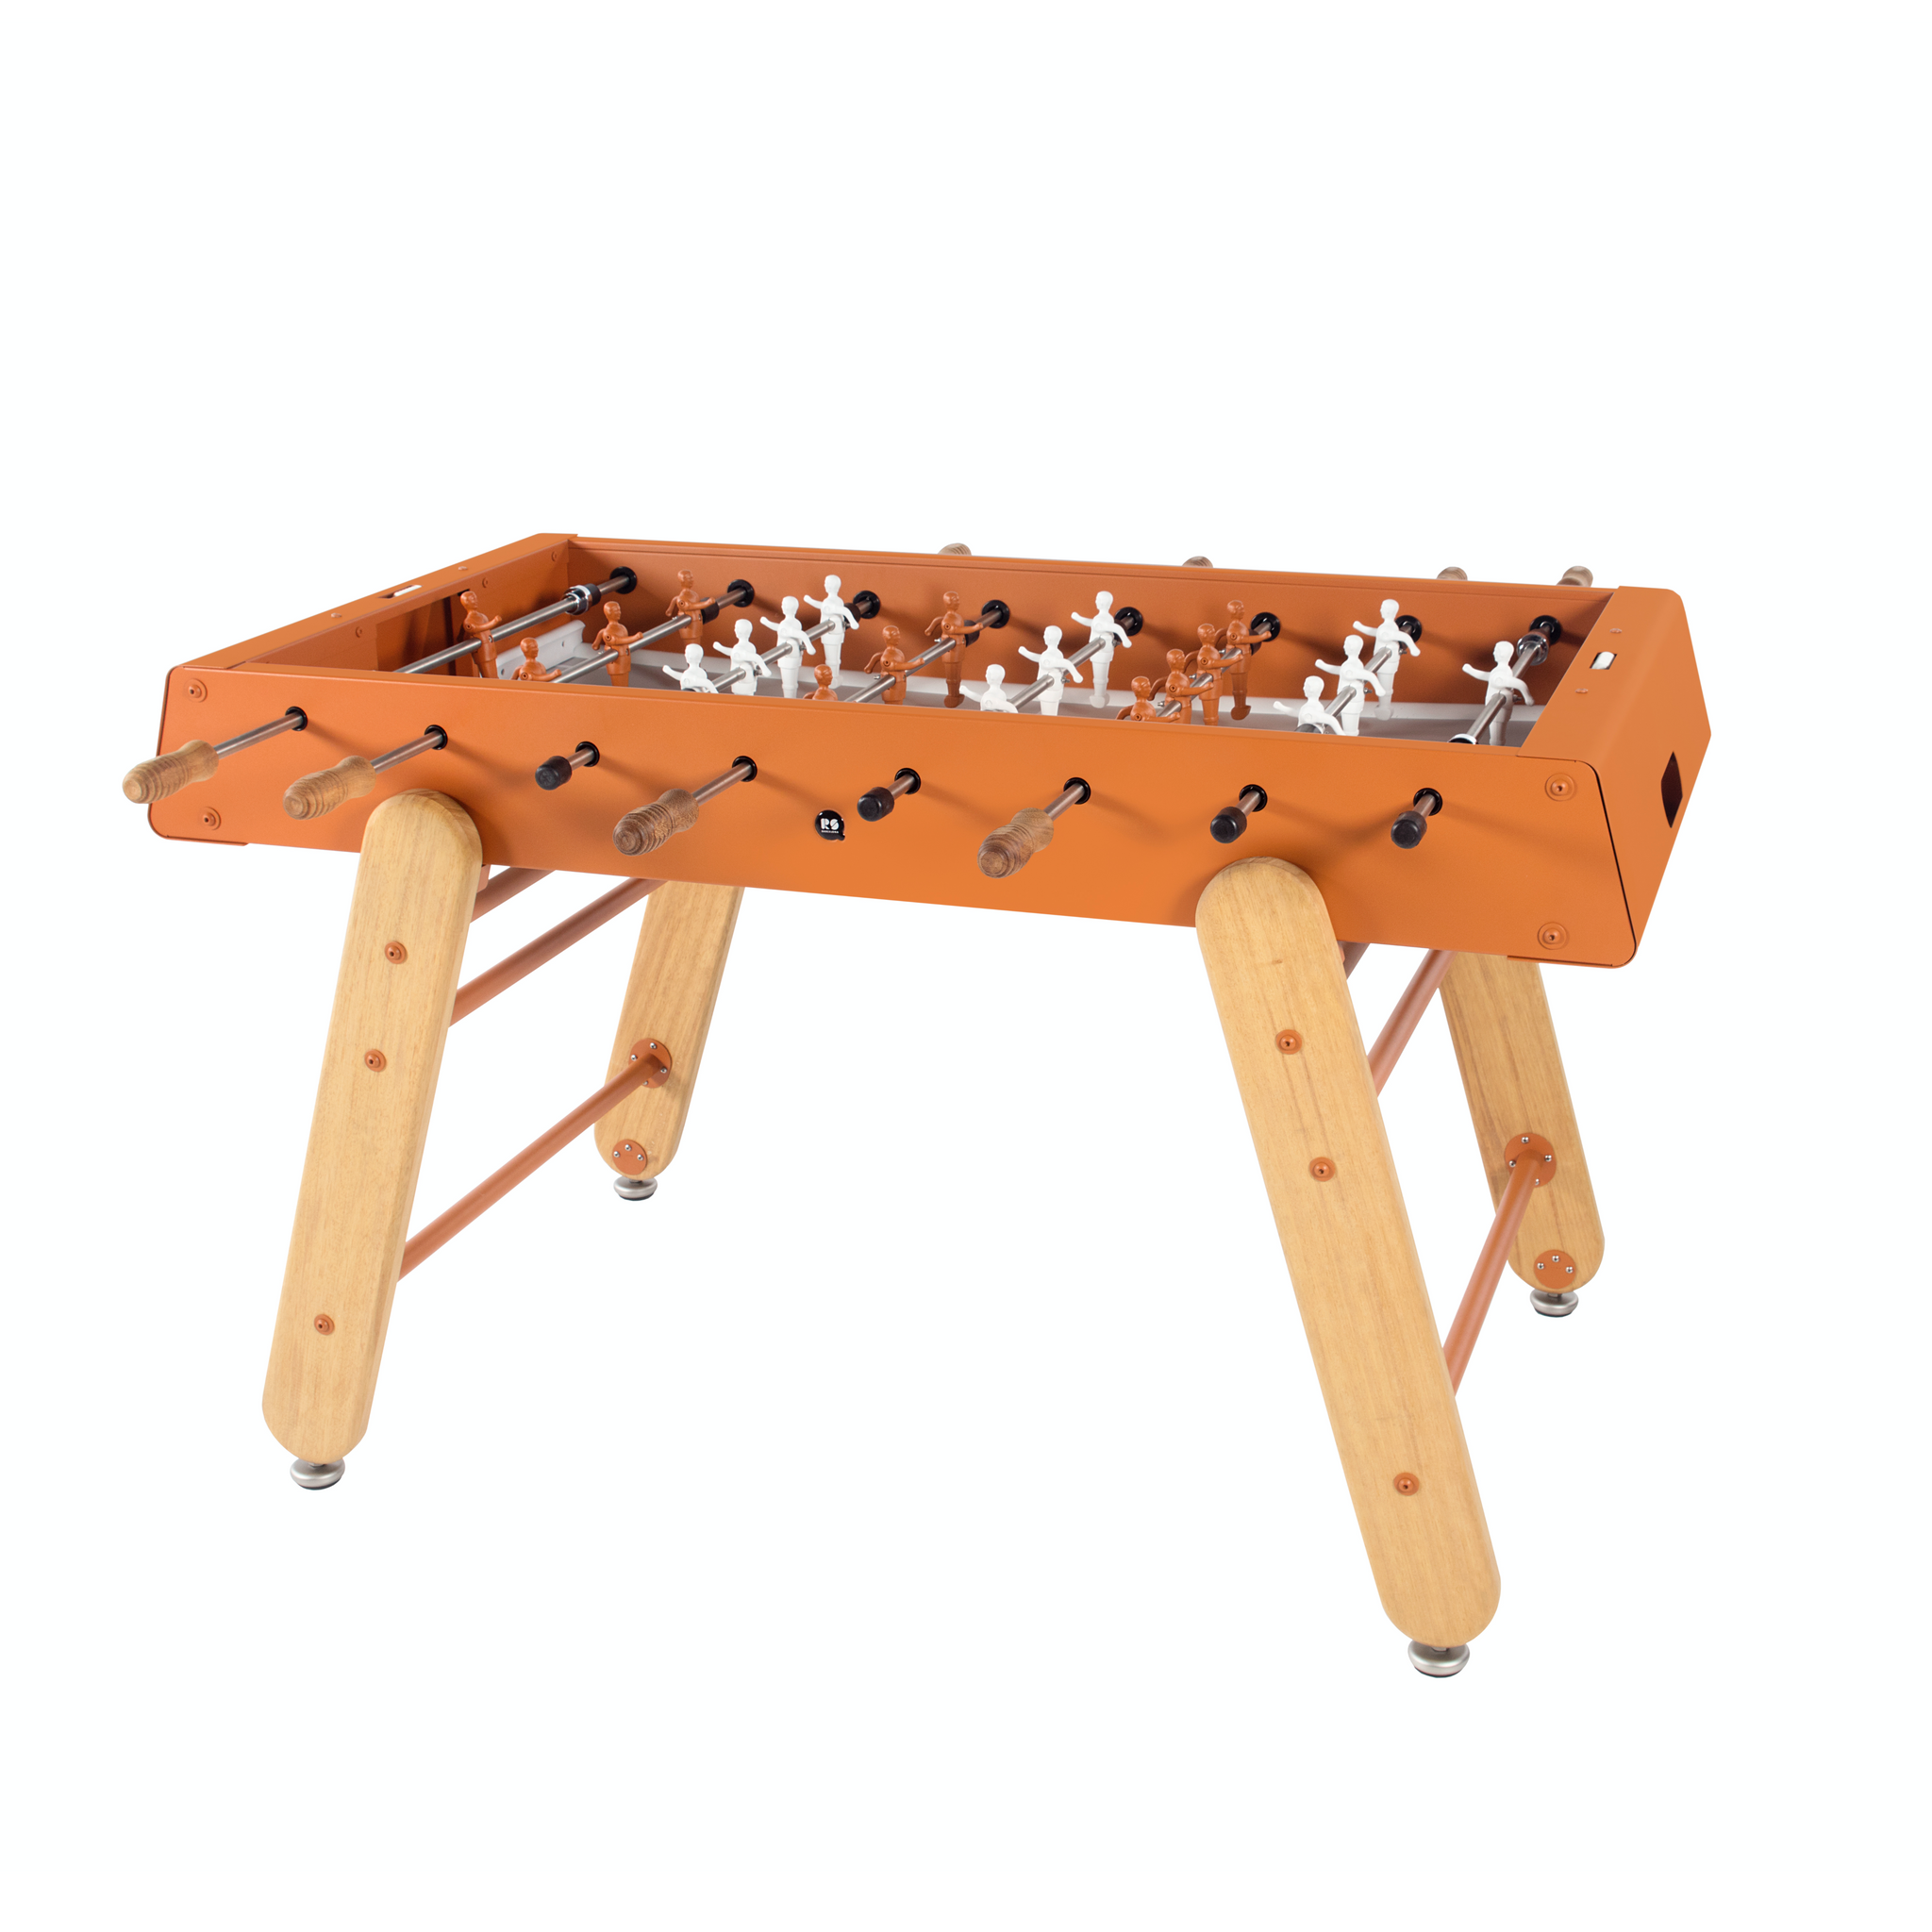 RS4 Home Wood Foosball Table in Terracotta